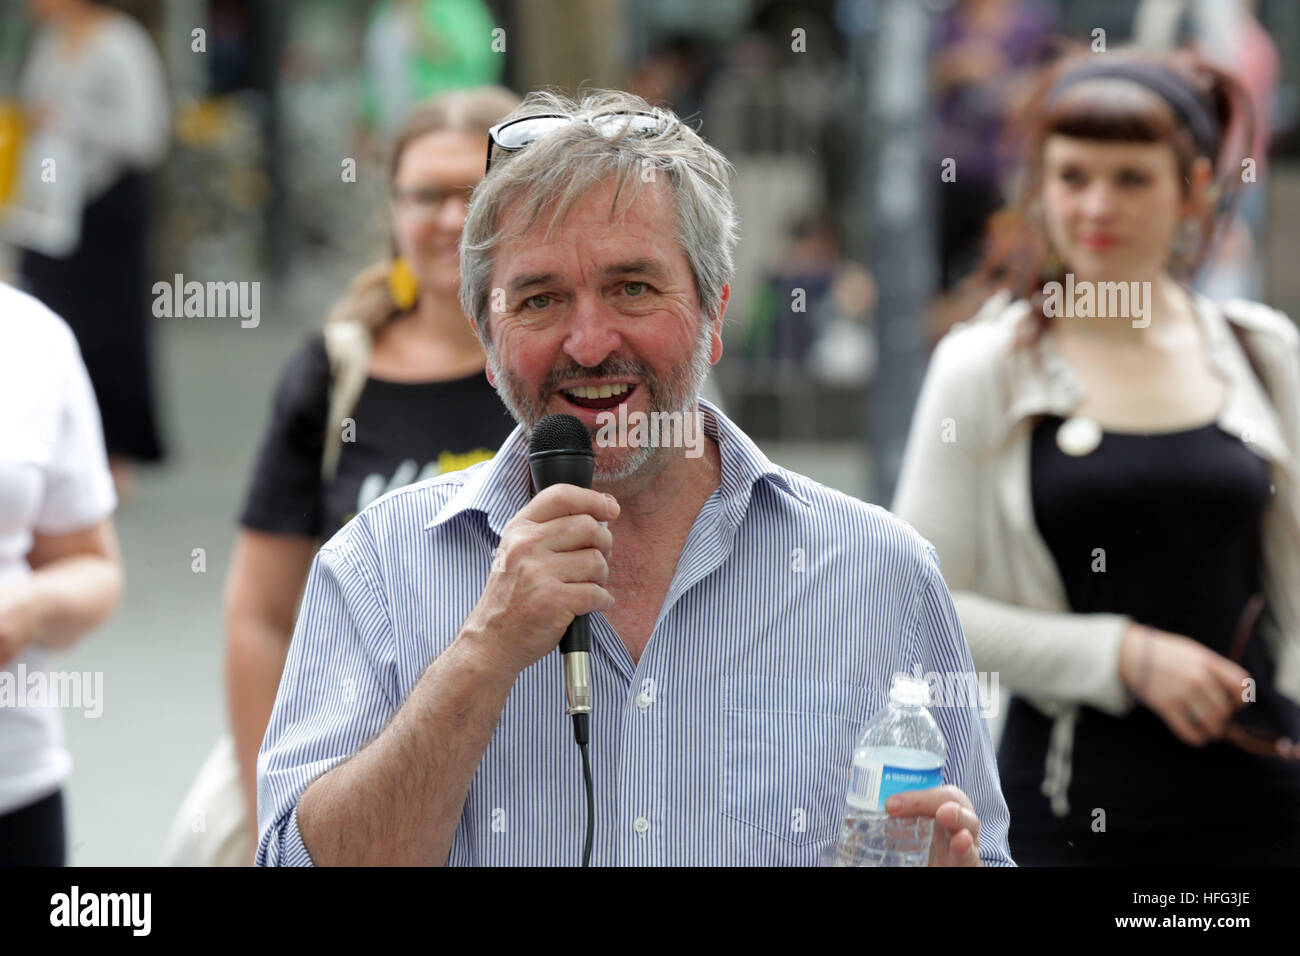 Associate professor John Minns speaking to a refugee rights rally in Canberra, Australia. - Stock Image